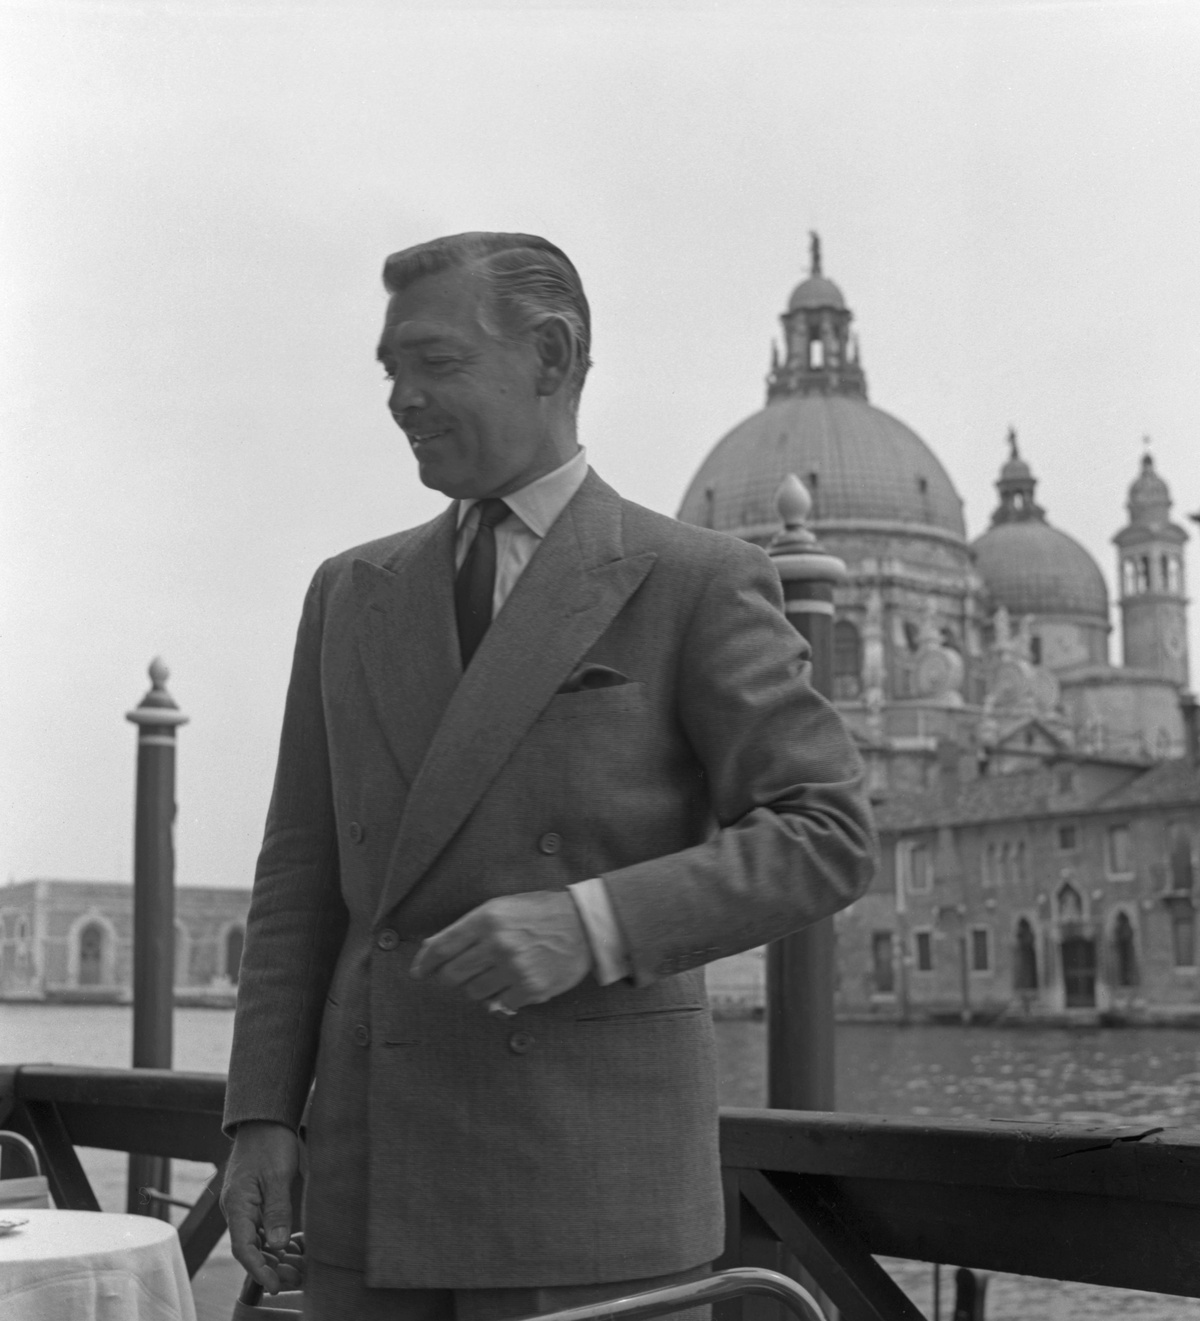 American actor Clark Gable, wearing a suit and a tie, portrayed standing on a restaurant terrace, on the background the Salute Basilica, Venice, 1953. КРЕДИТ s